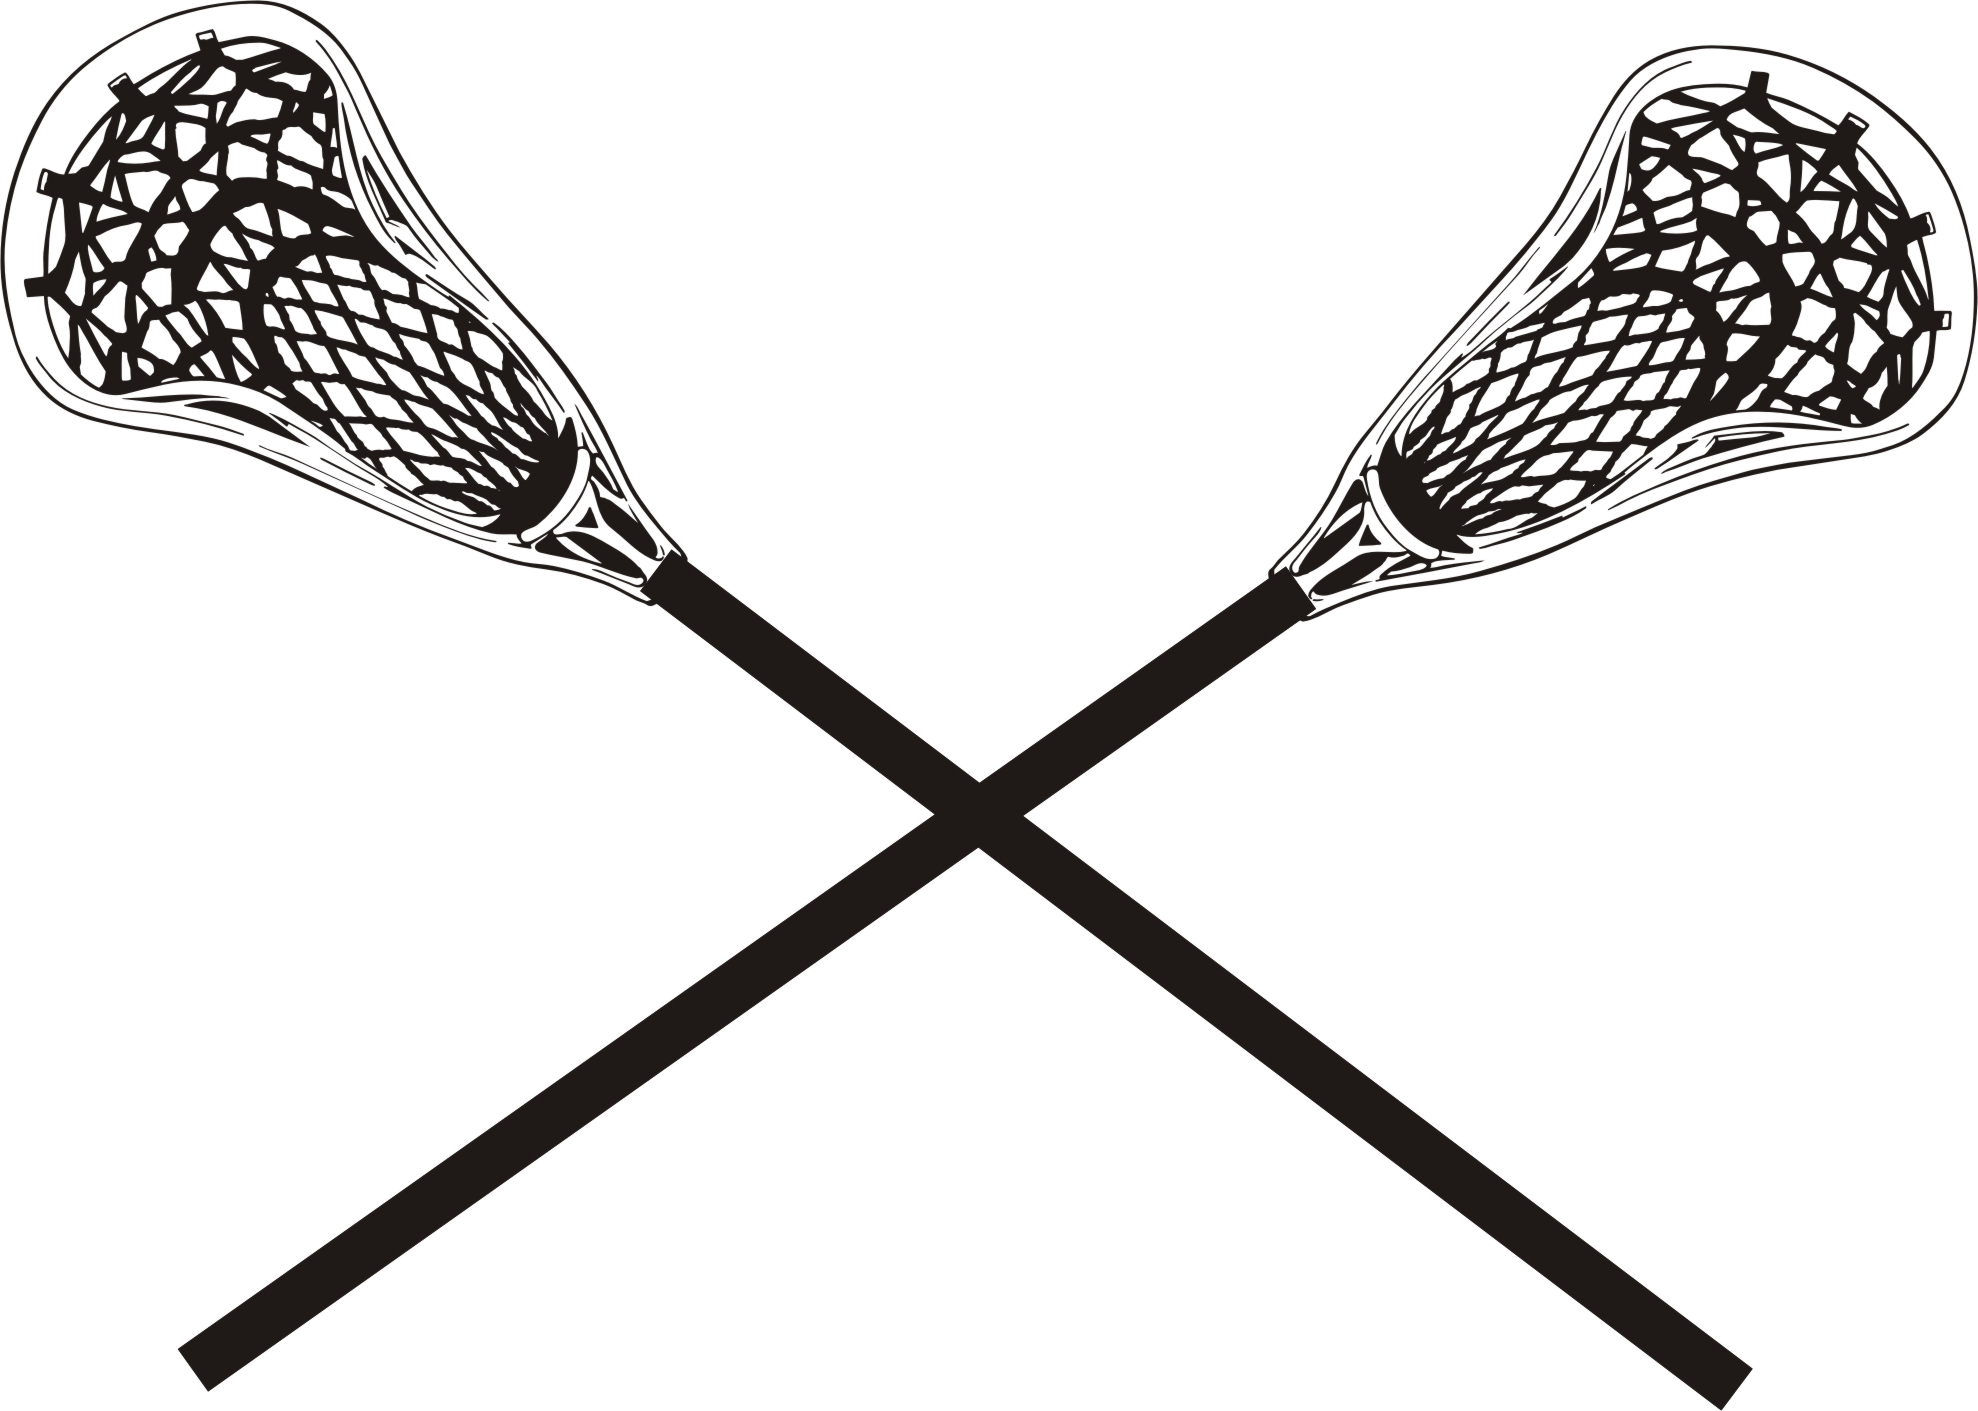 Lacrosse clip art images illustrations photos.